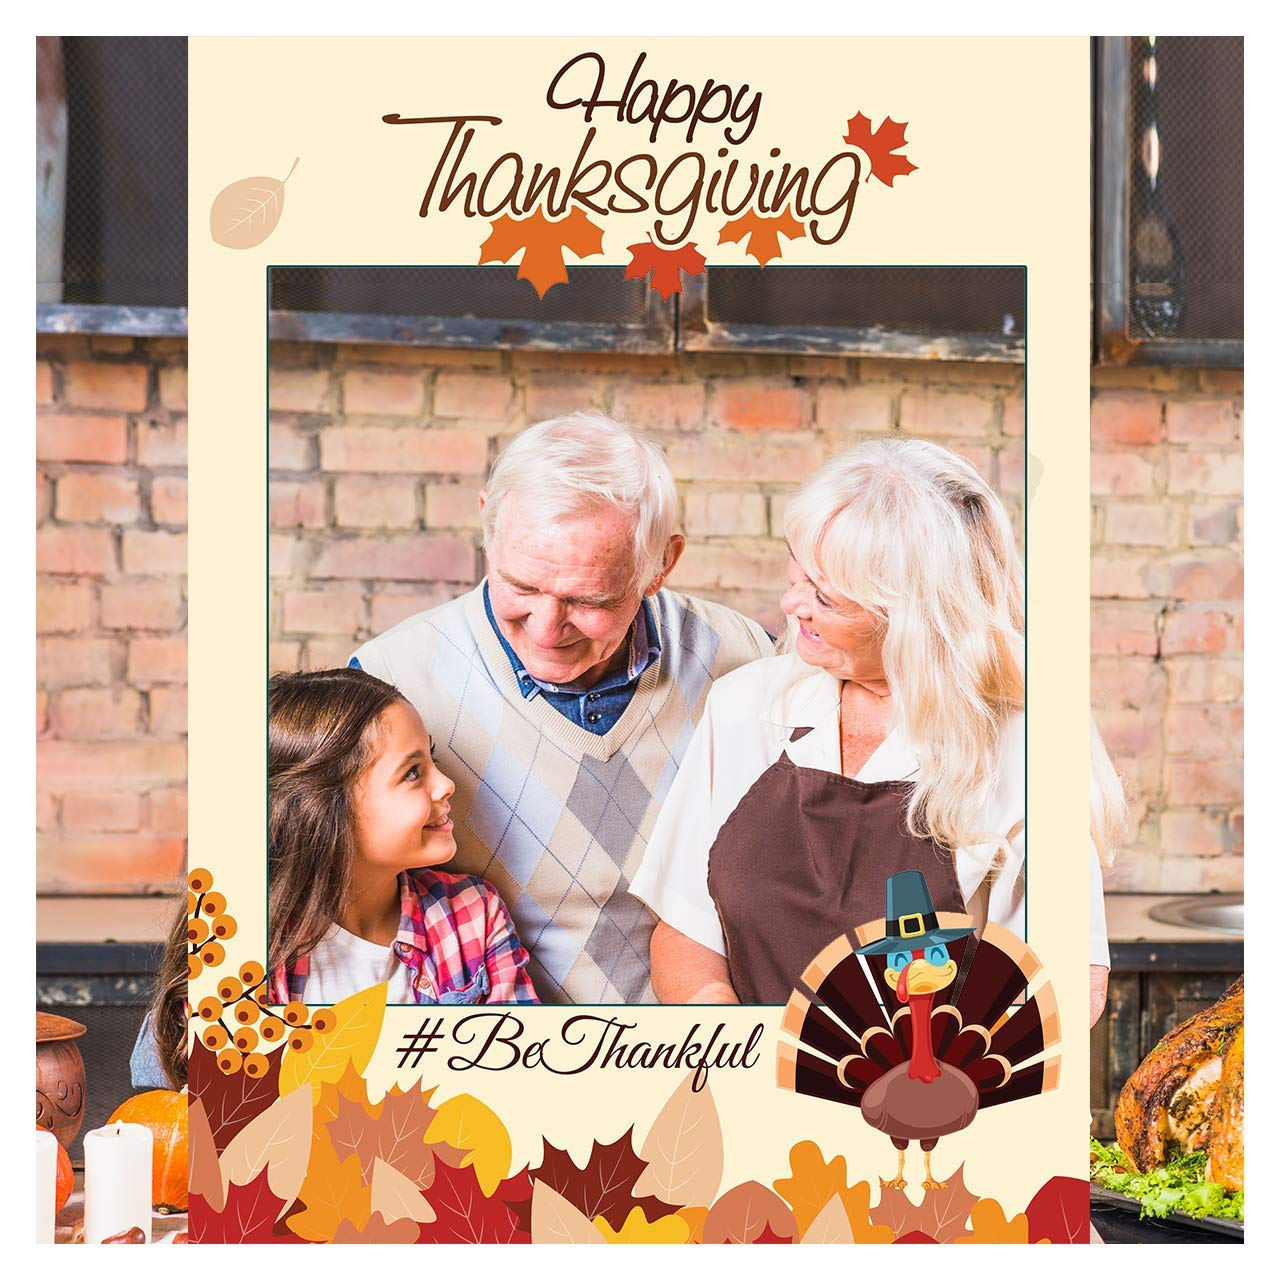 New Thanksgiving Dinner Party Backdrop Turkey Day Background 7x5ft Photo Booth Studio Props 1111